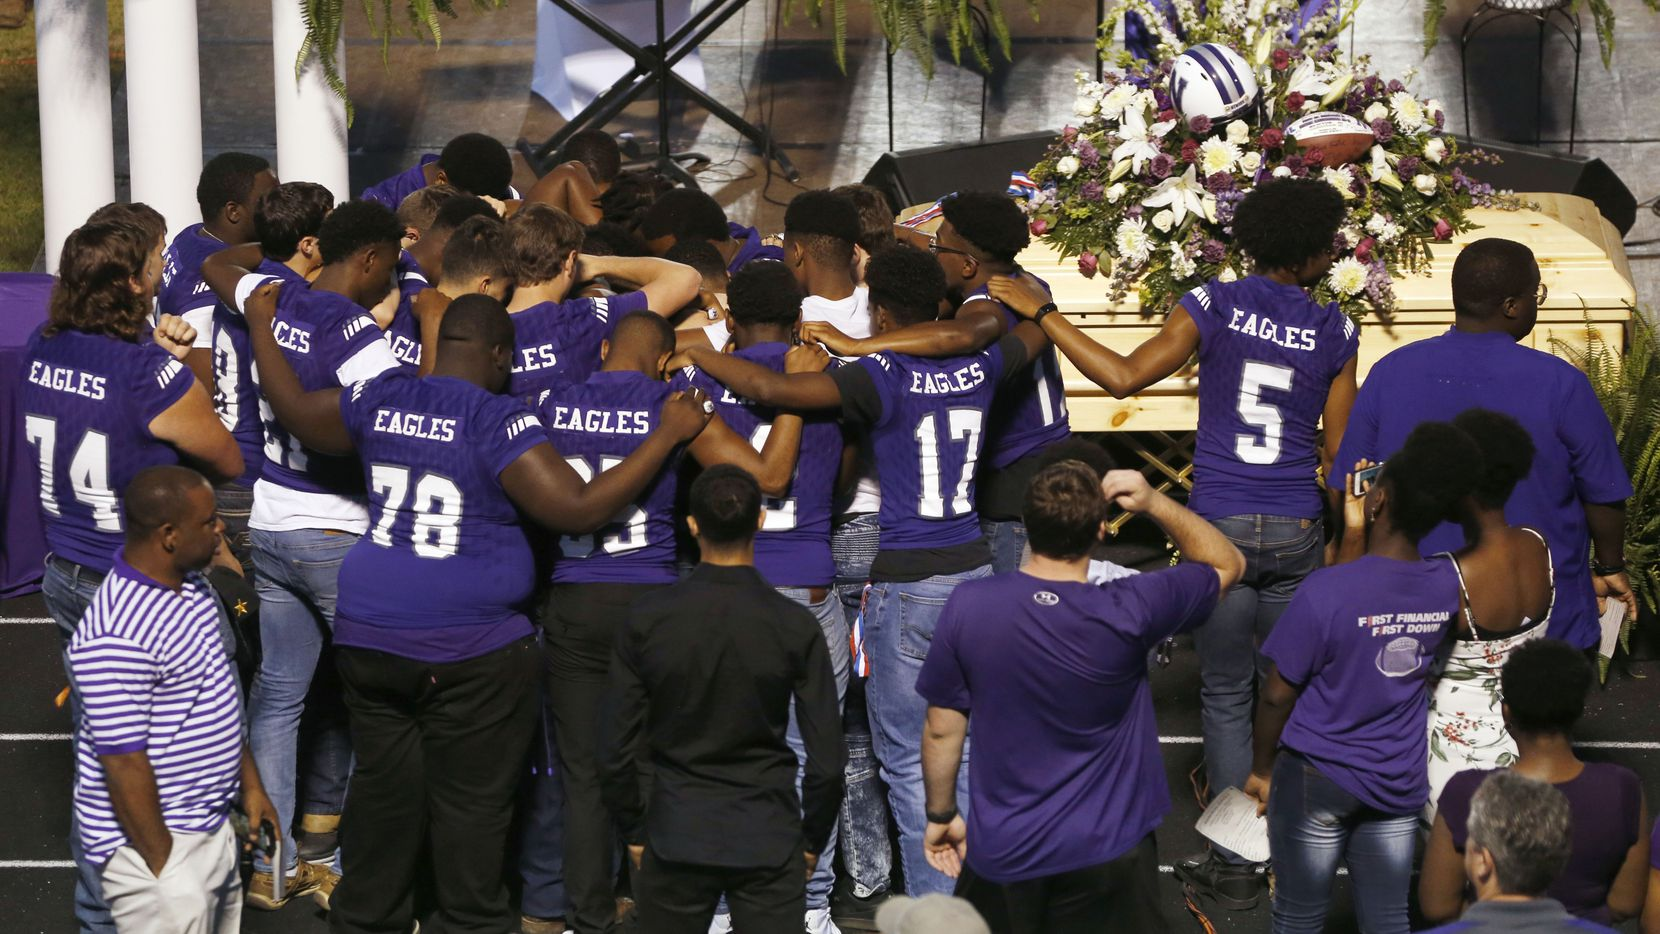 """Newton High School football team talk to each other after a memorial service for Newton High School head football coach William Theodore """"W.T."""" Johnston at Curtis Barbay Field at Newton High School in Newton, Texas on Wednesday, May 15, 2019. (Vernon Bryant/The Dallas Morning News)"""